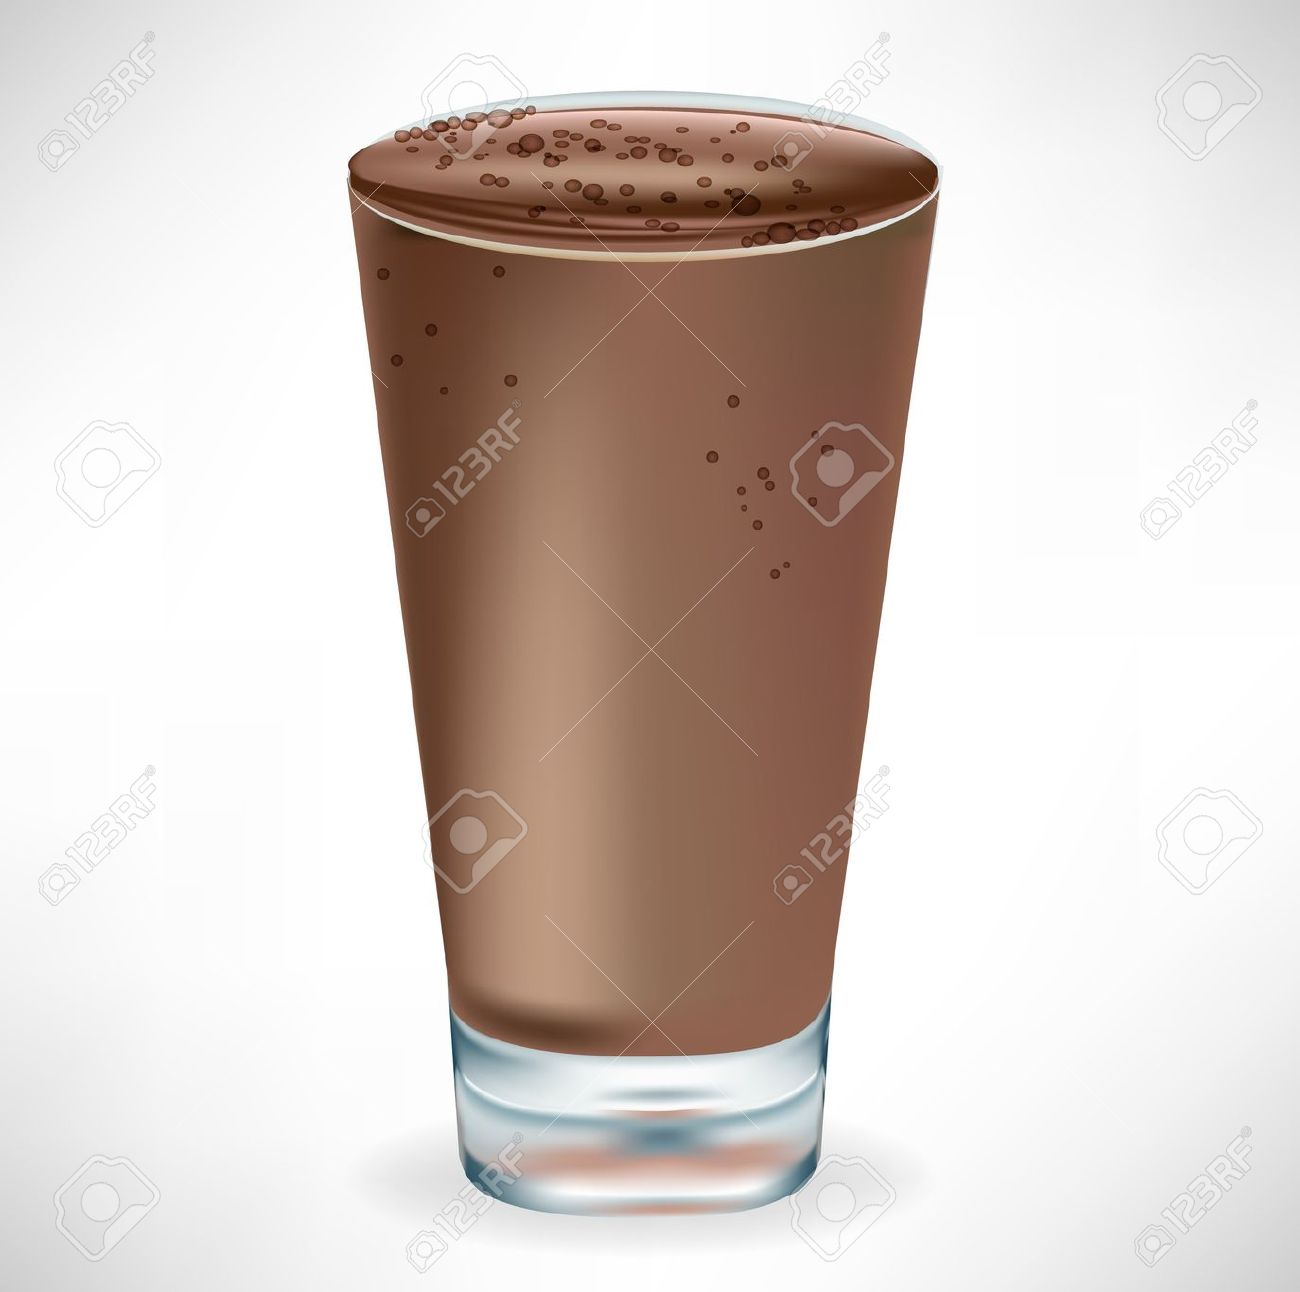 Chocolate Smoothie Stock Vector Illustration And Royalty Free